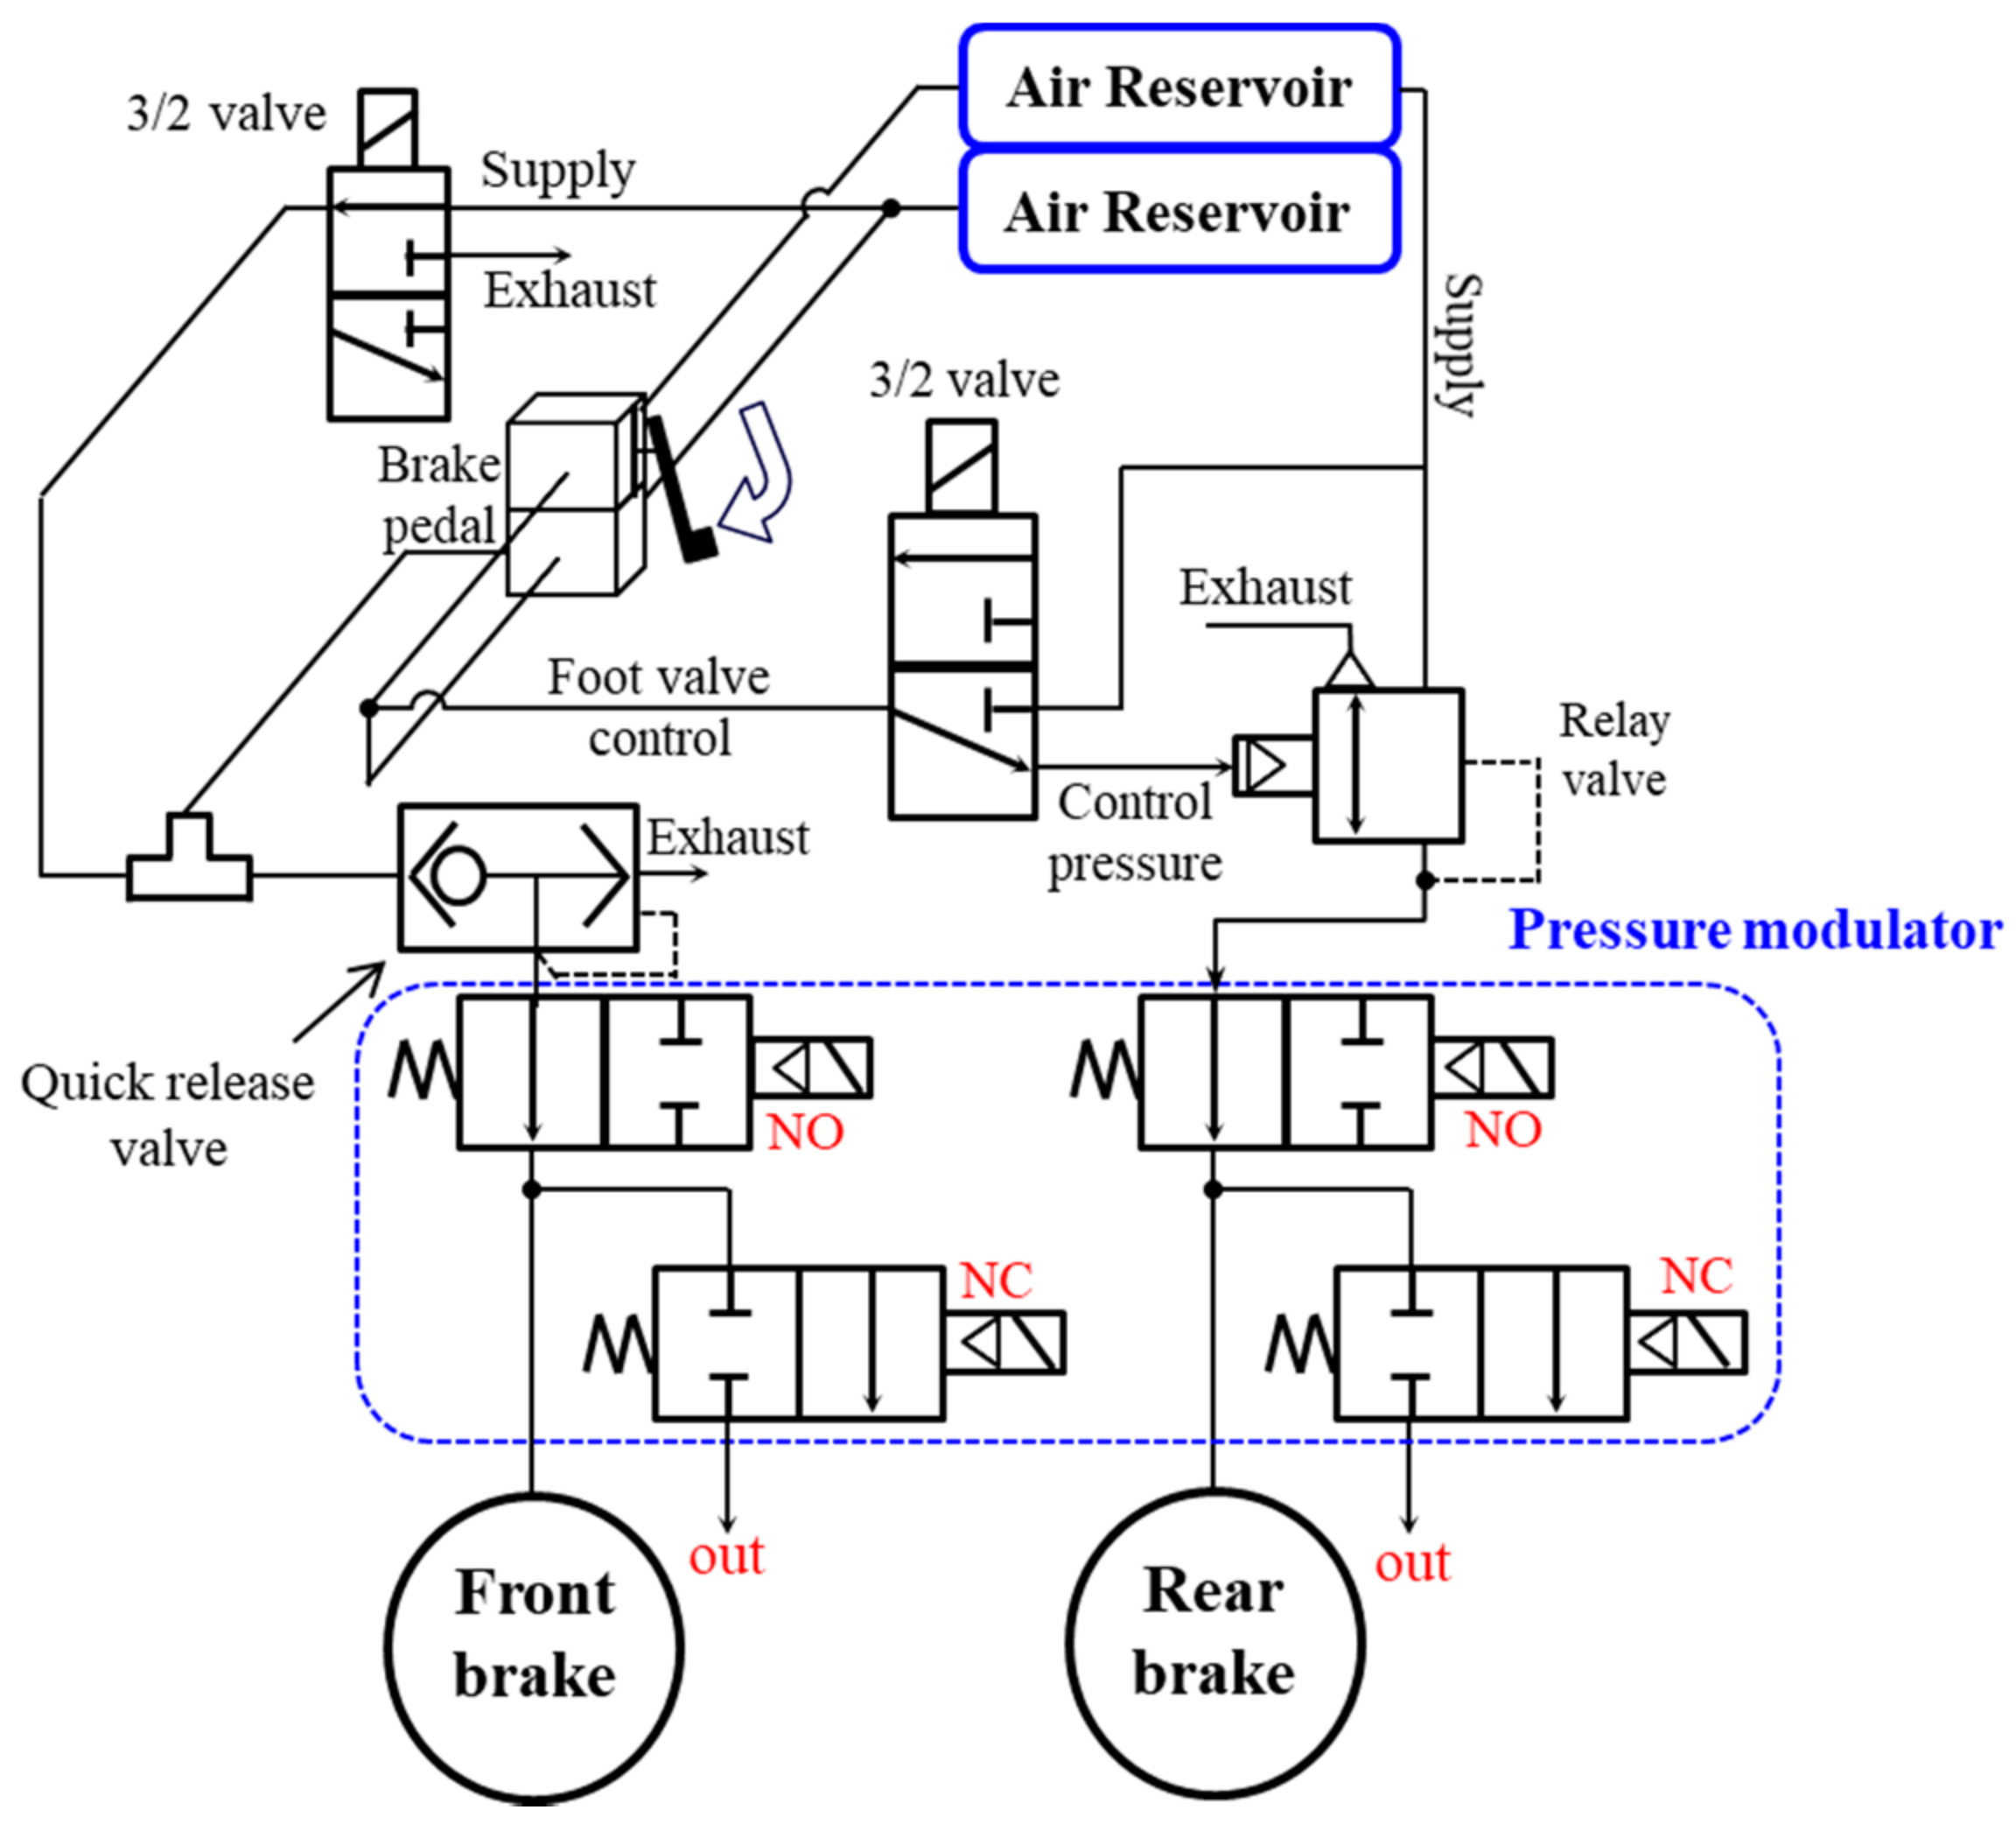 Sensors Free Full Text Development Of Wheel Pressure Control Air Brakes Schematic No